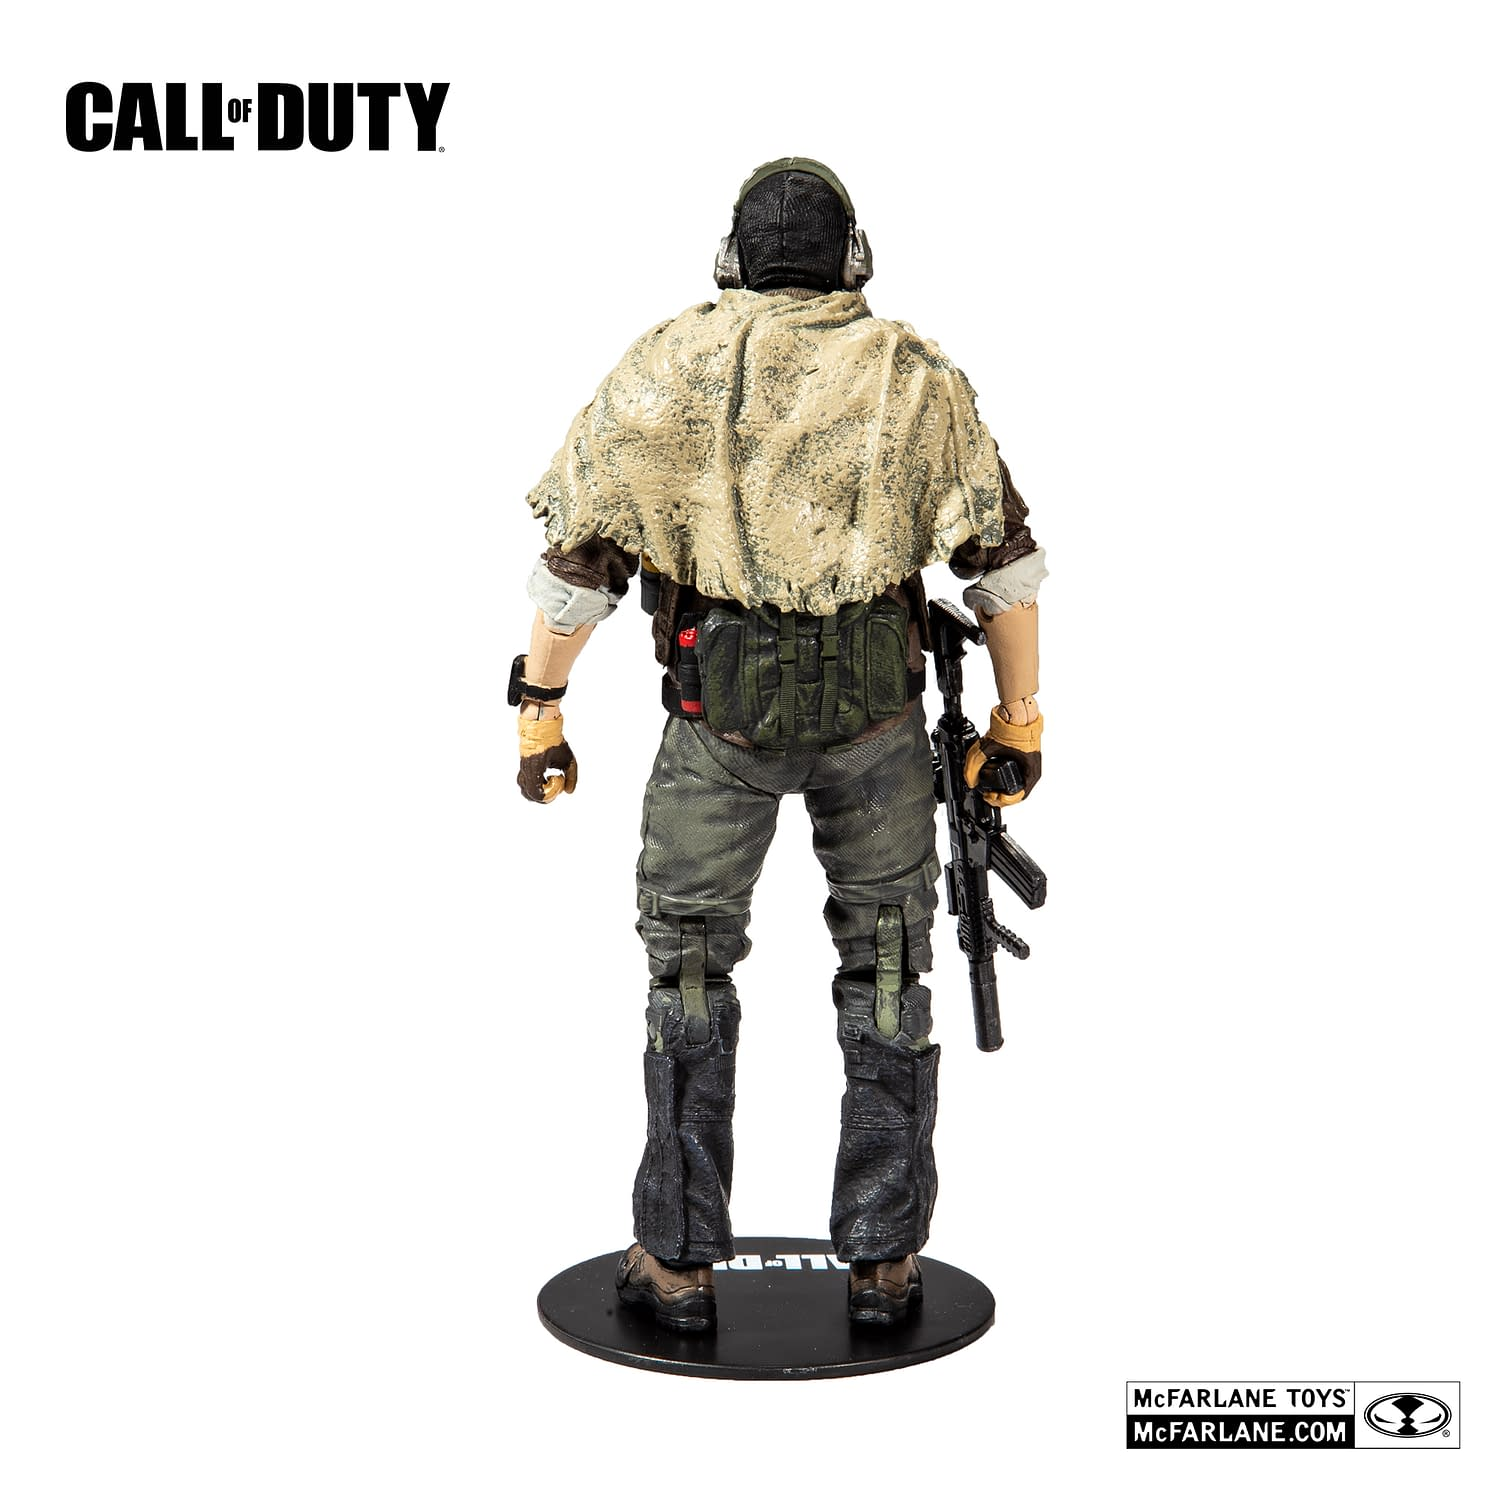 Call of Duty Ghost Enters the War with McFarlane Toys